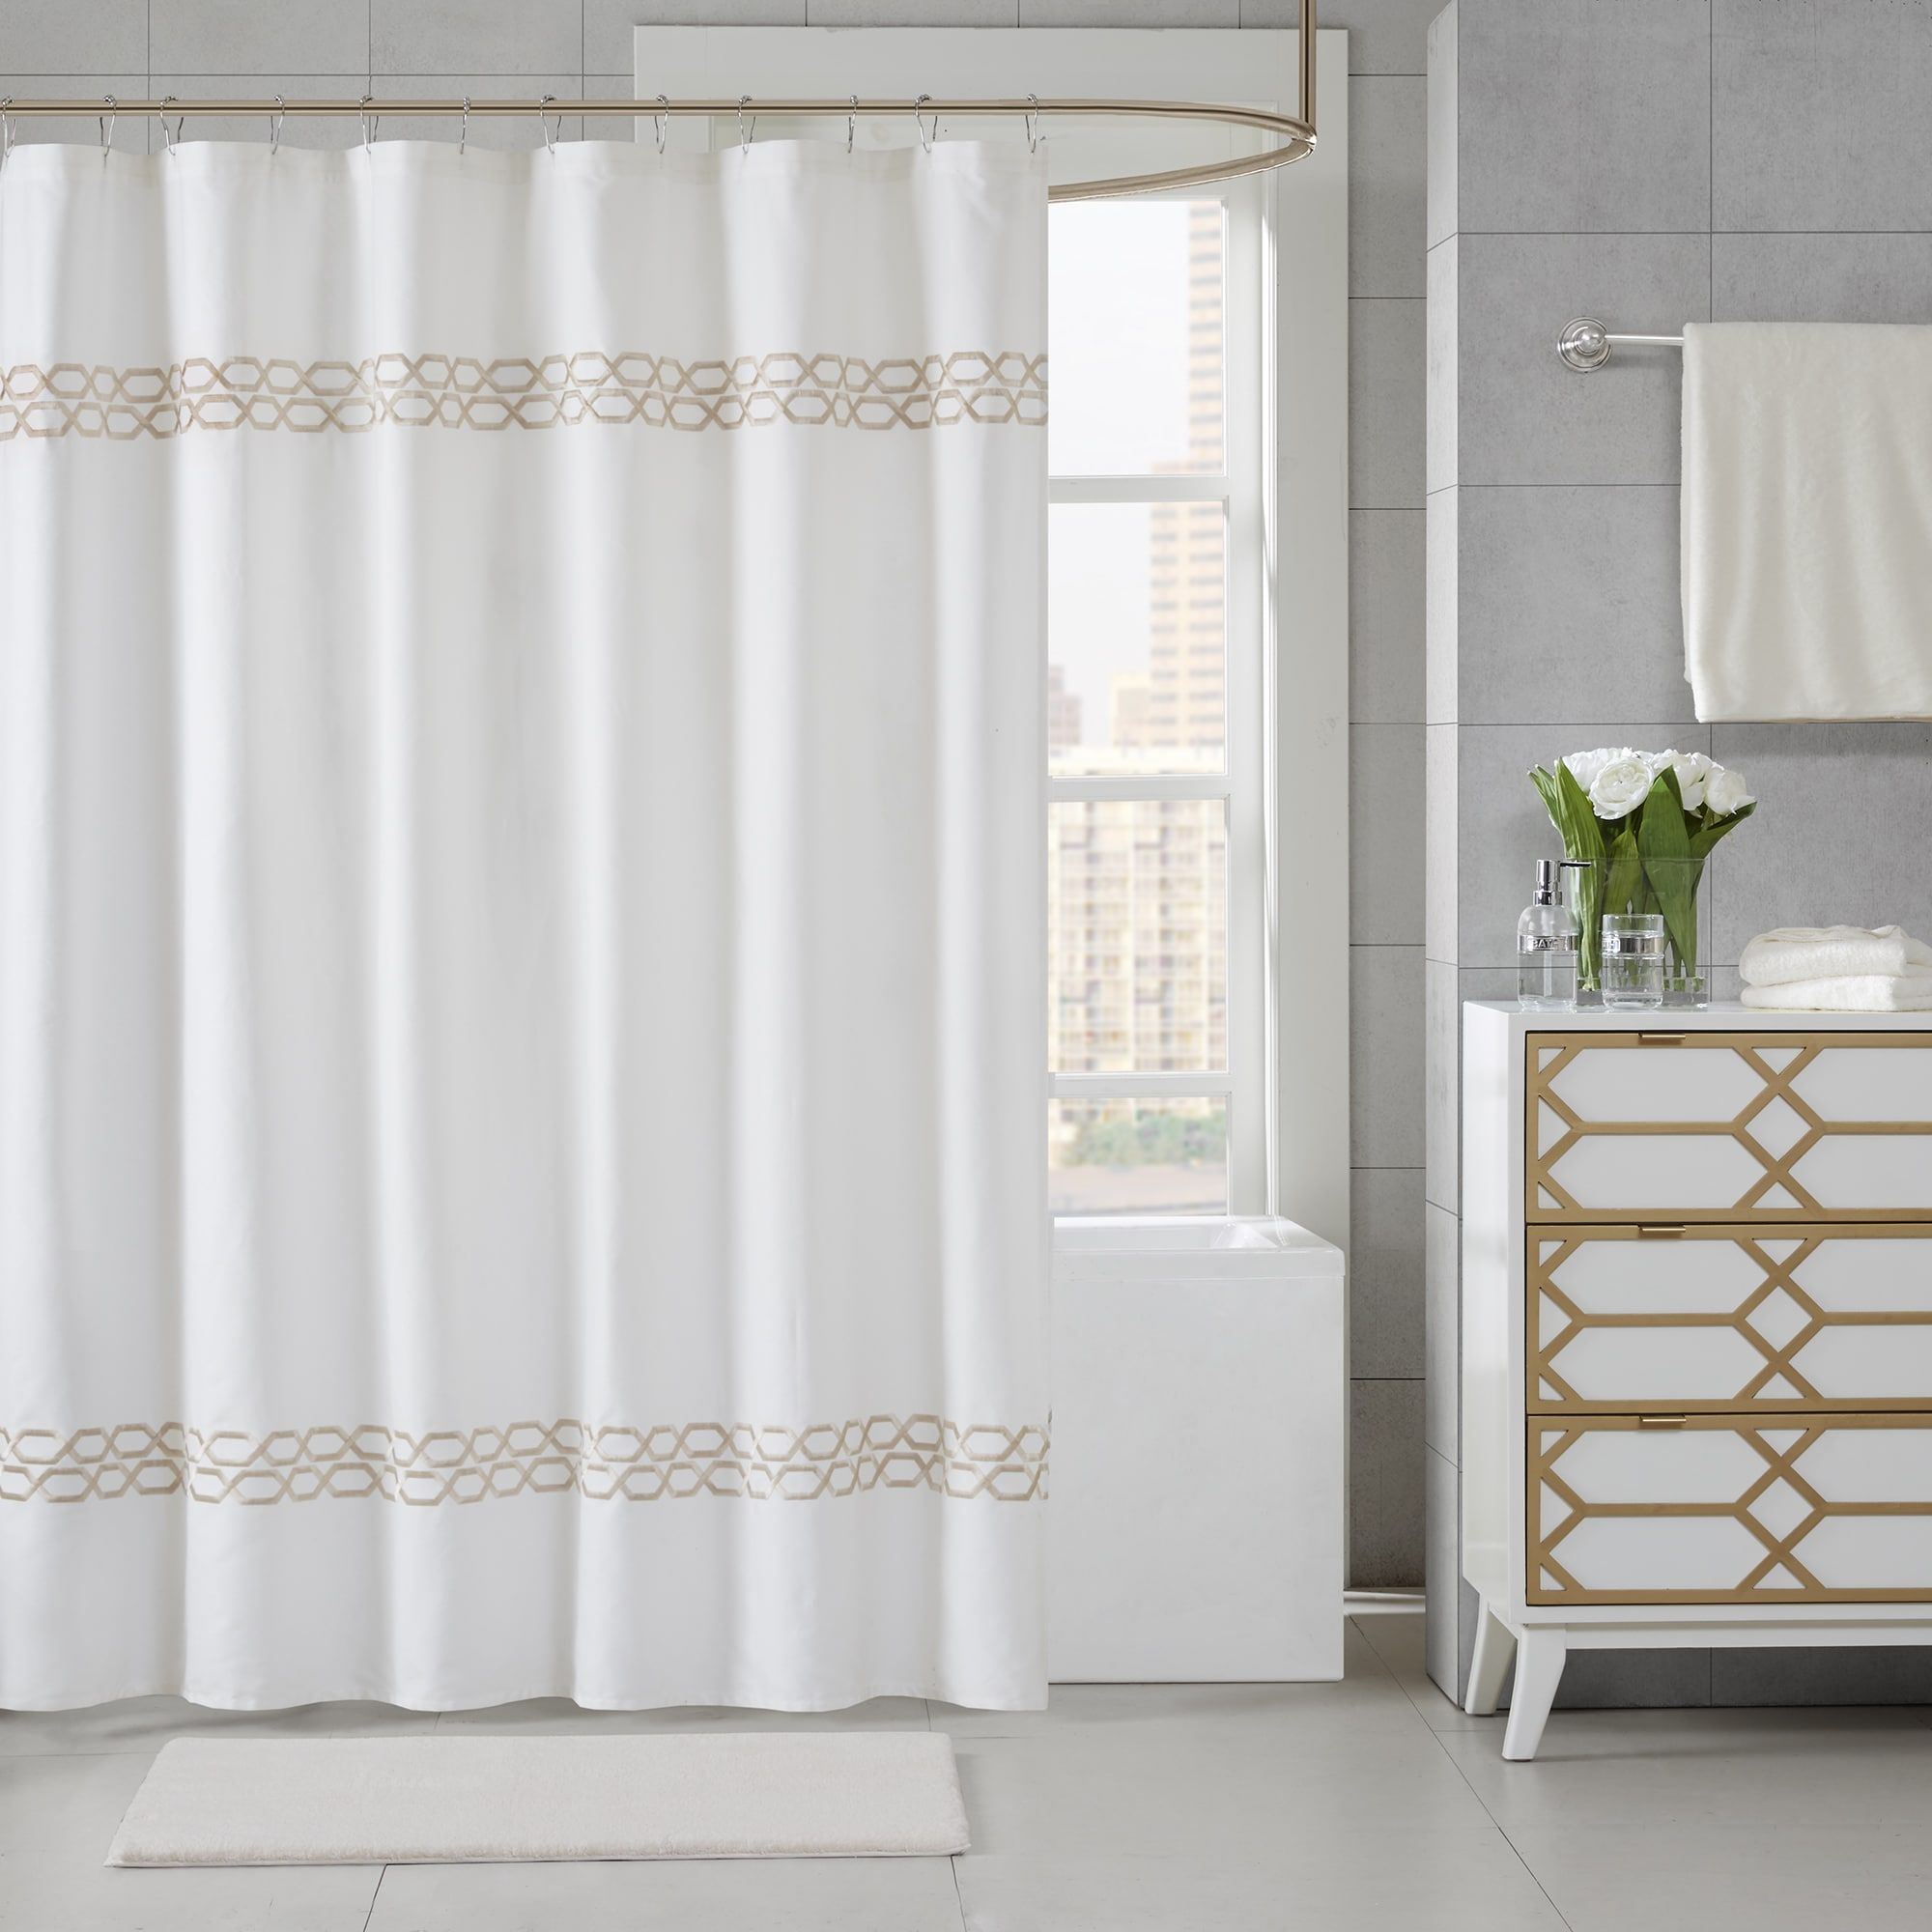 Clay alder home niantic embroidered shower curtain color option